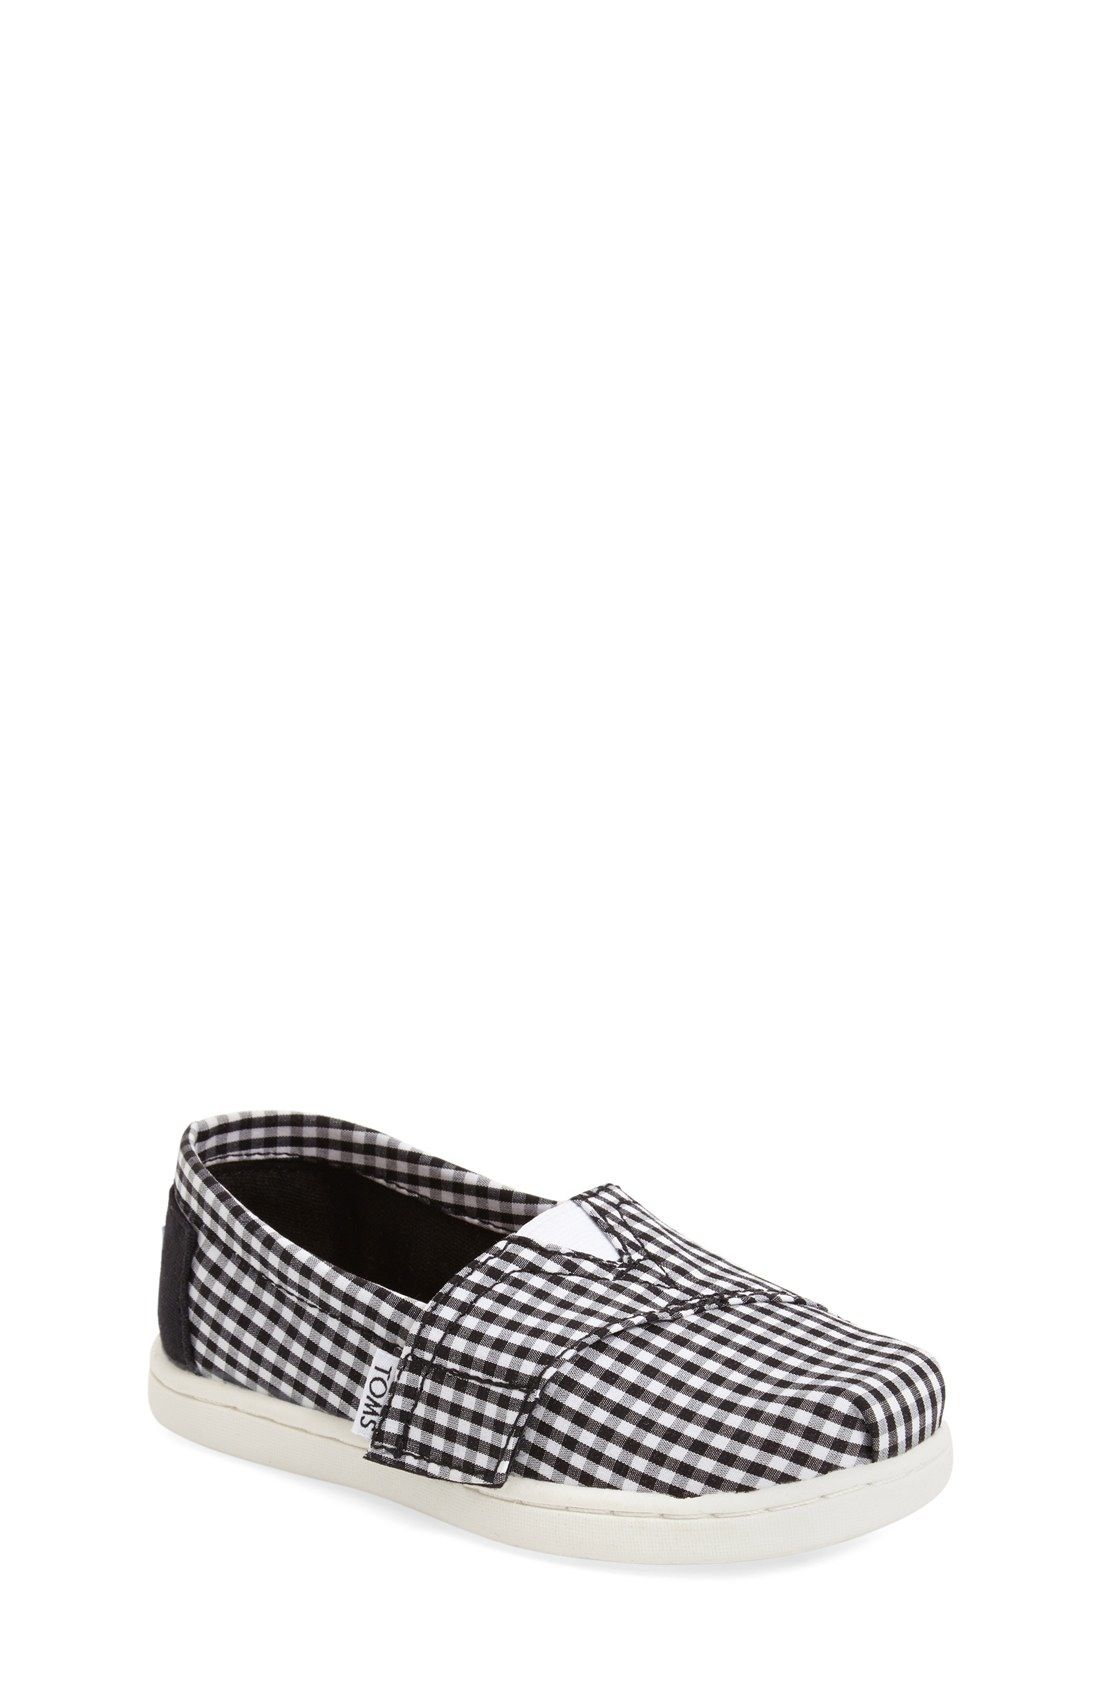 492548b1a57 TOMS Gingham Slip-On (Baby